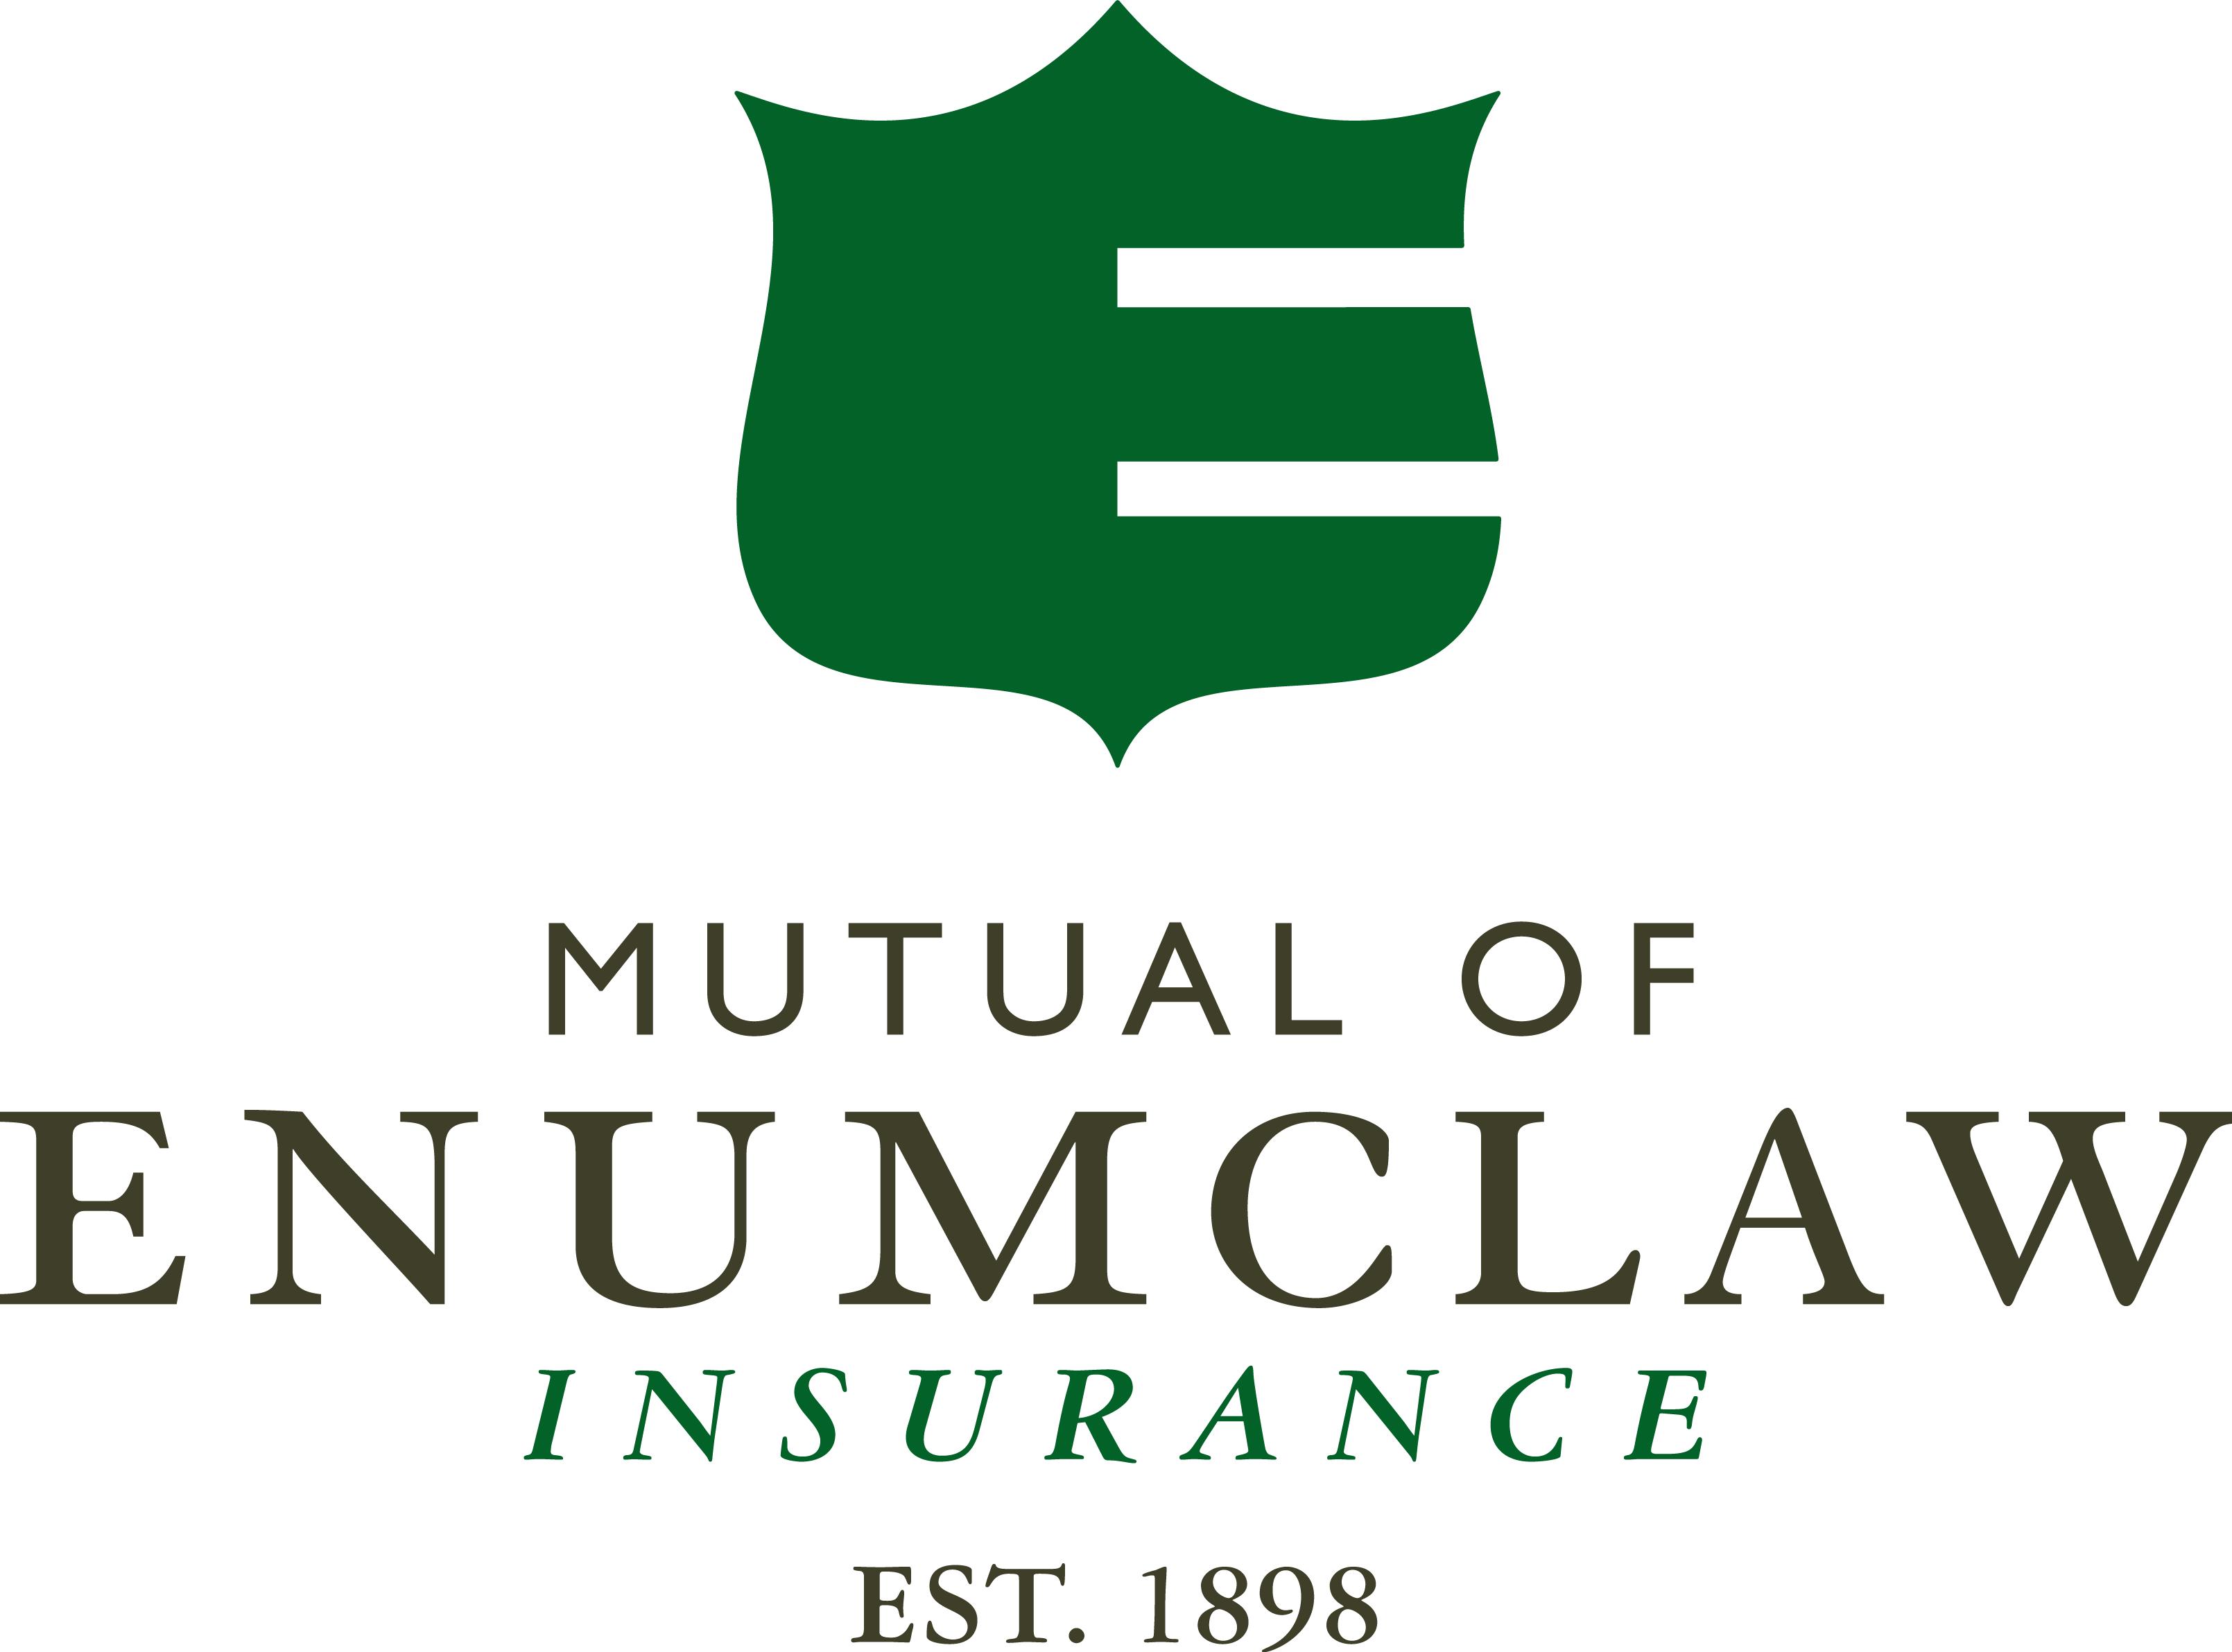 Mutual Of Enumclaw Gives Back To The Communities In Which They